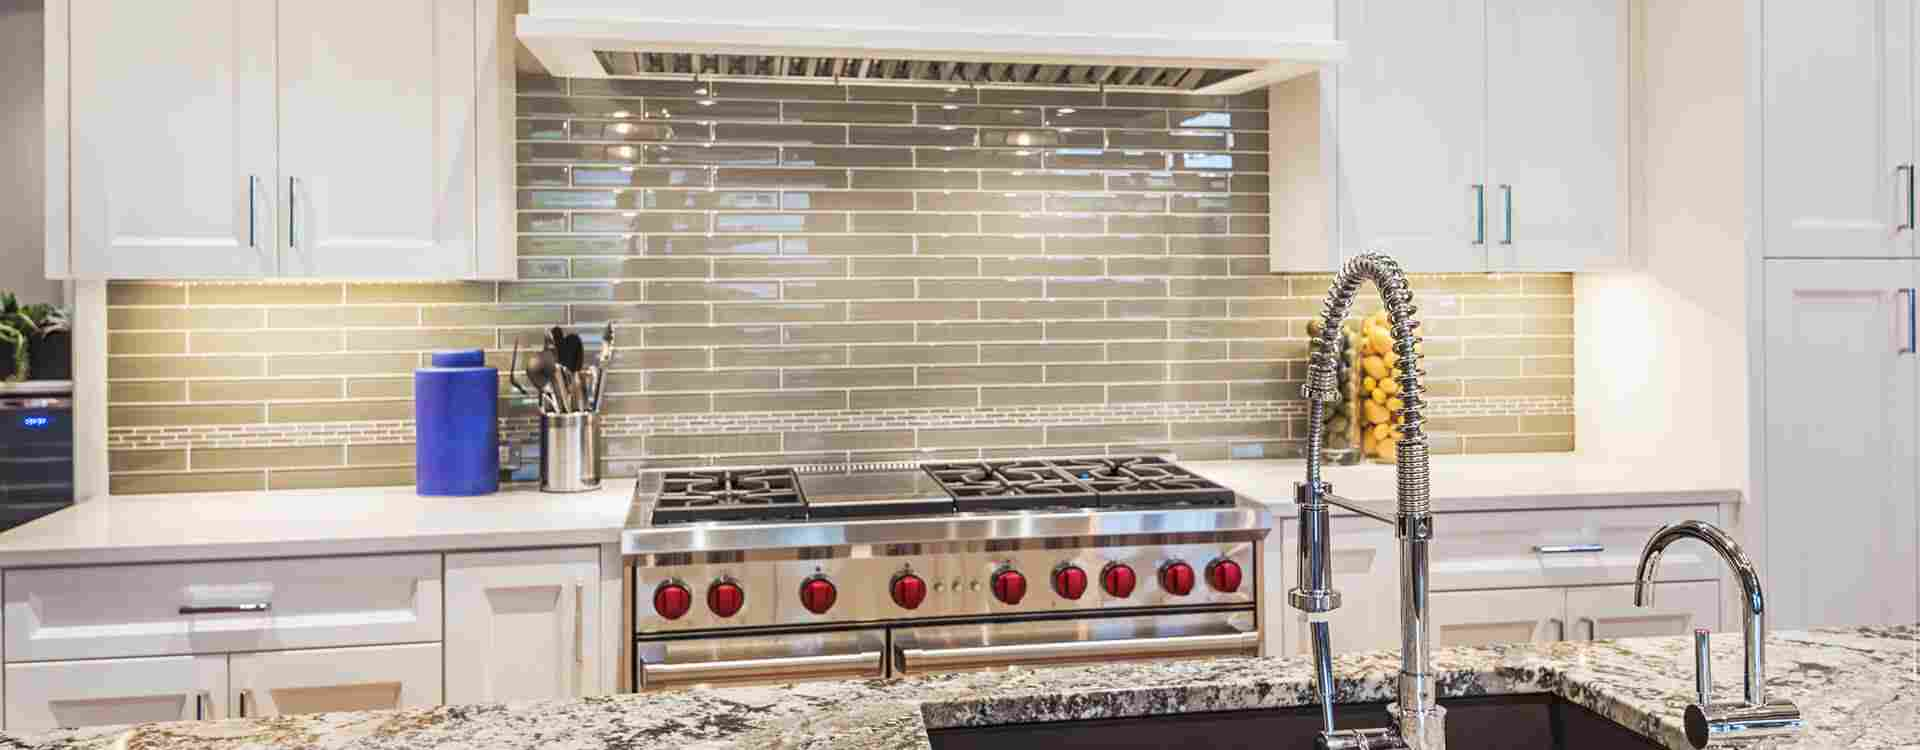 Backsplash Ideas To Add More Spice To Your Kitchen Gilsa Usa